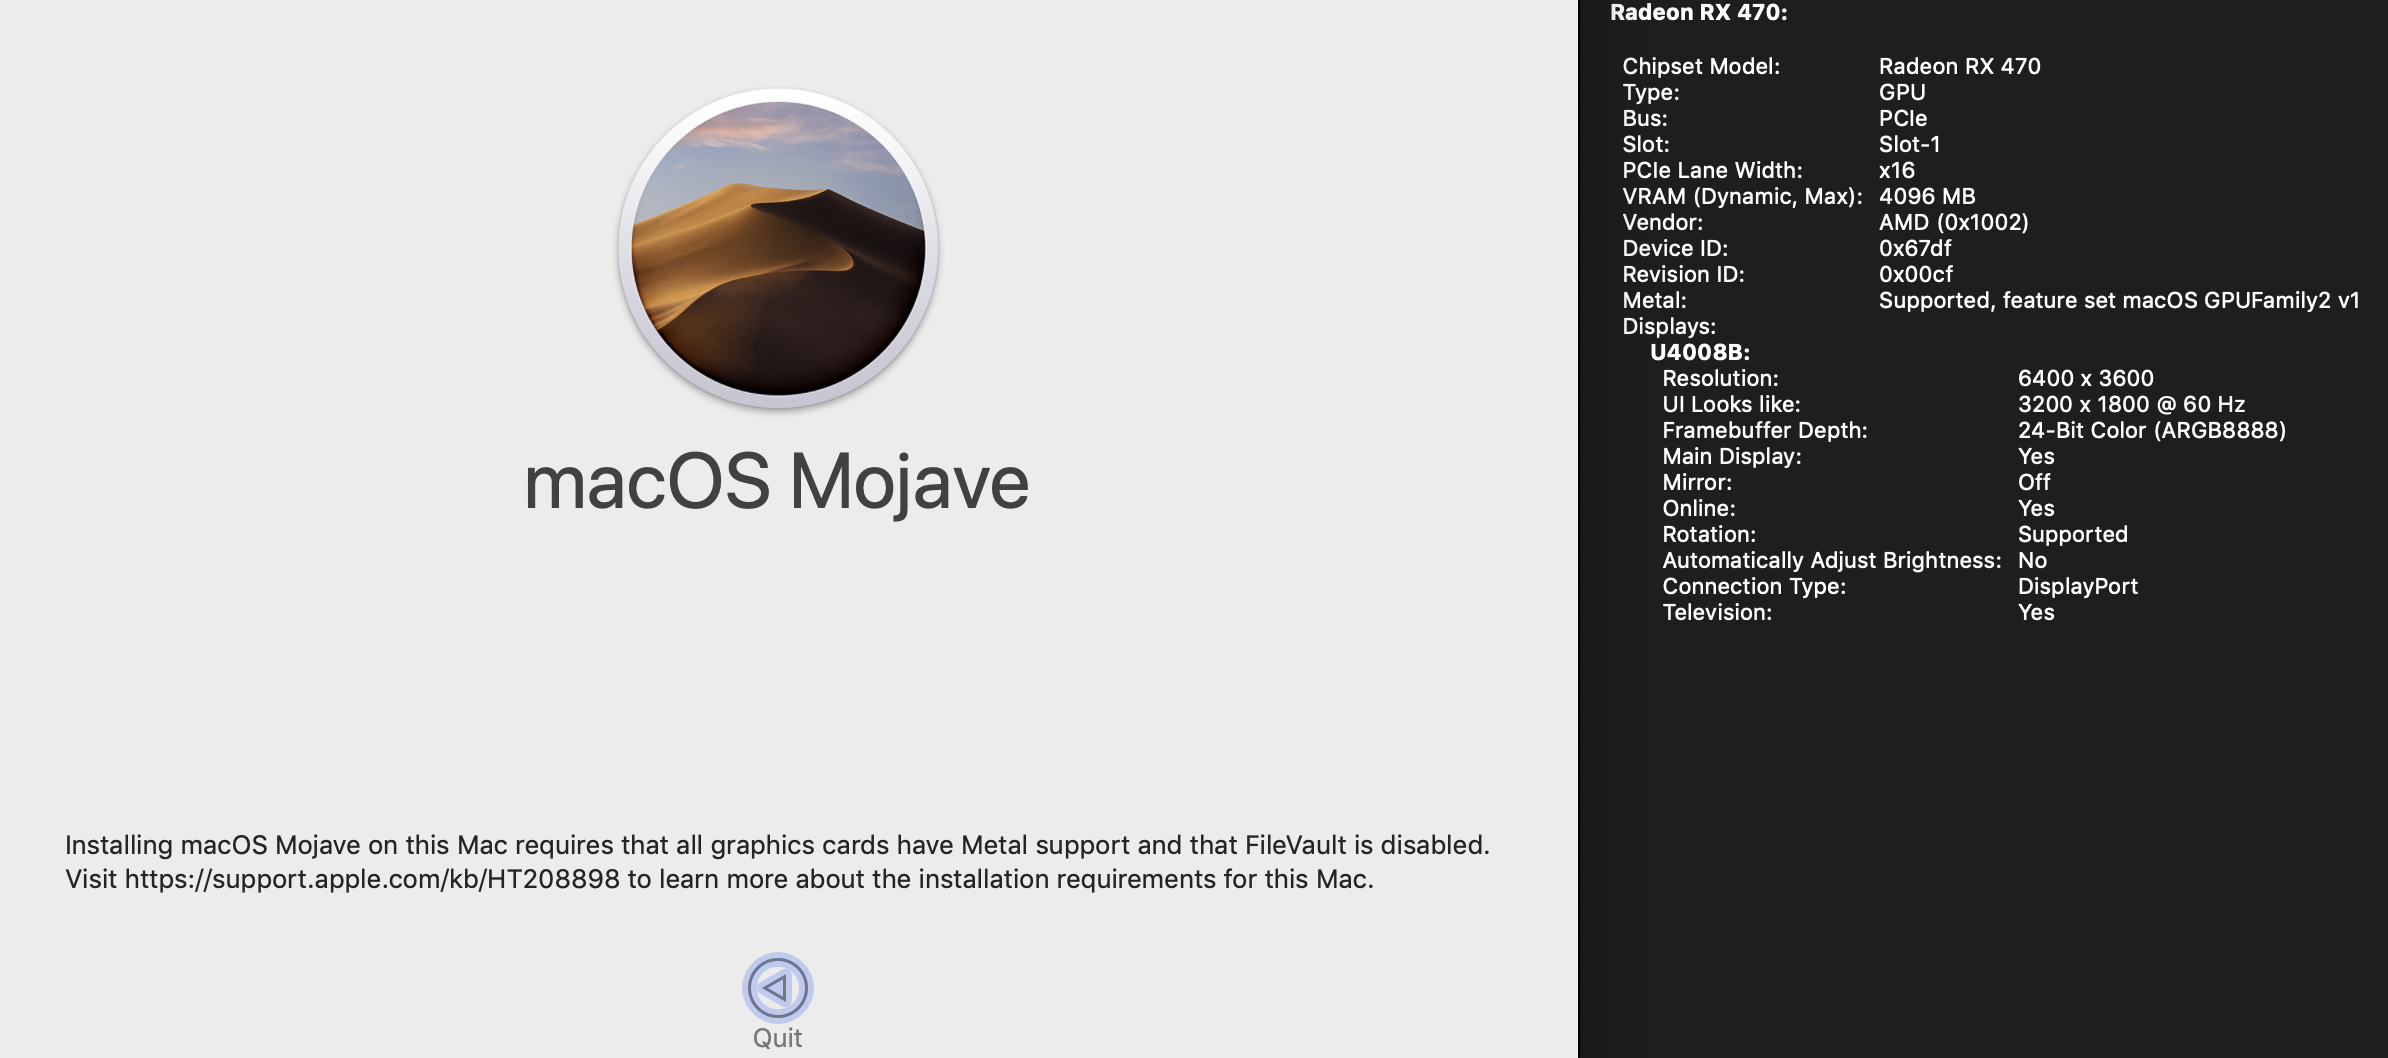 MP 1,1-5,1 - MP5,1: What you have to do to upgrade to Mojave